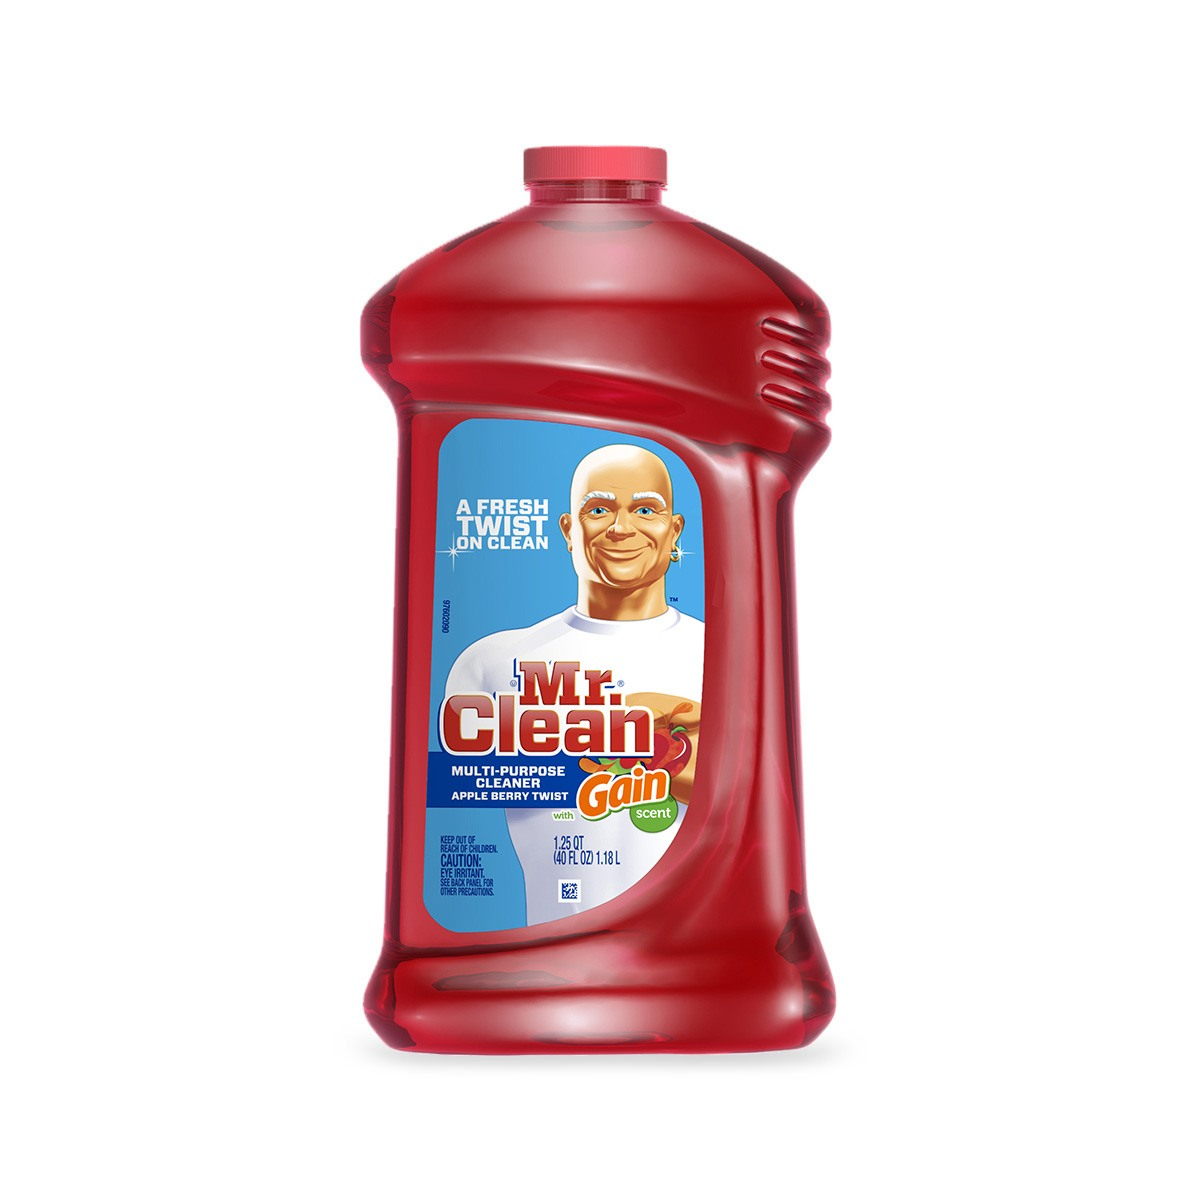 Mr Clean Multi-purpose cleaner with Apple Berry Twist